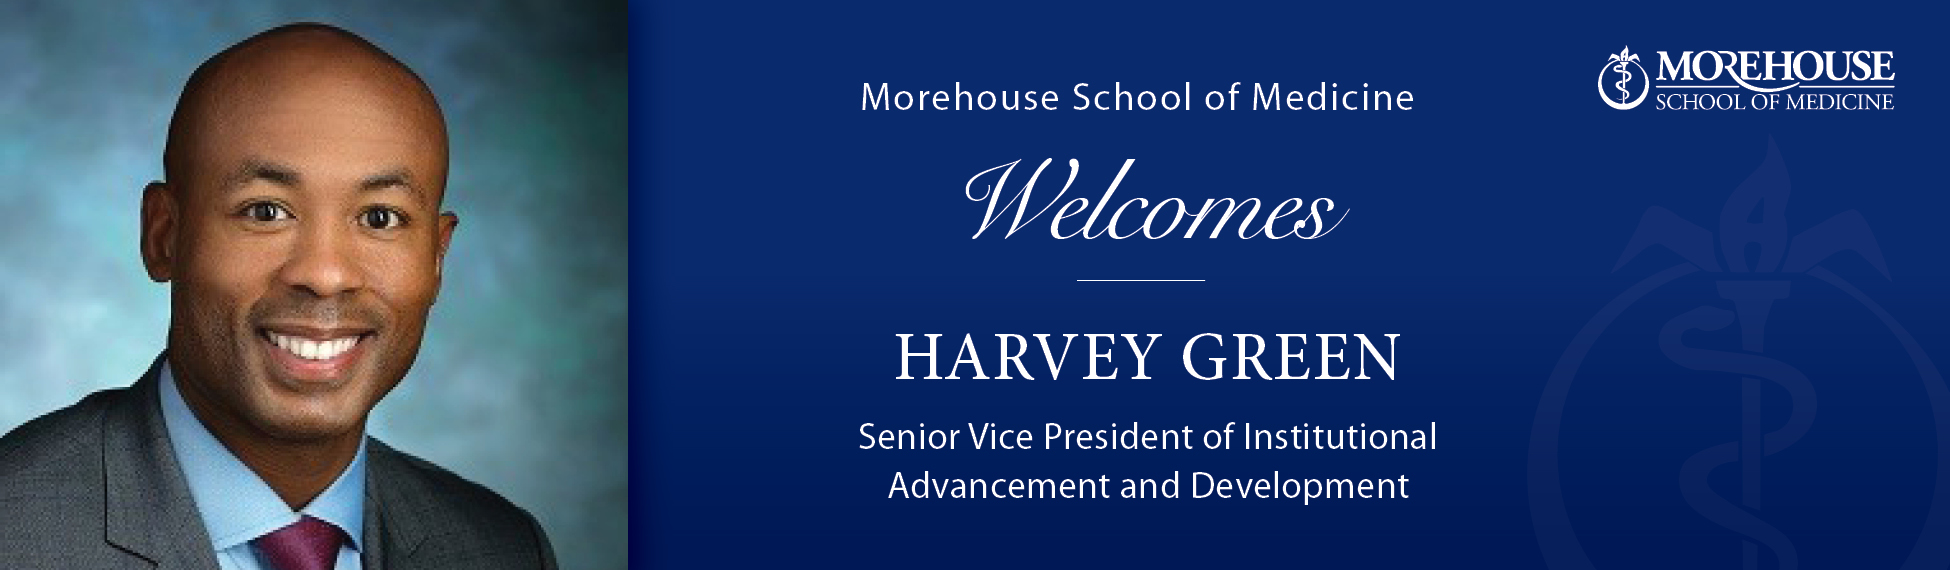 MSM Appoints Harvey Green as Senior Vice President of Institutional Advancement and Development